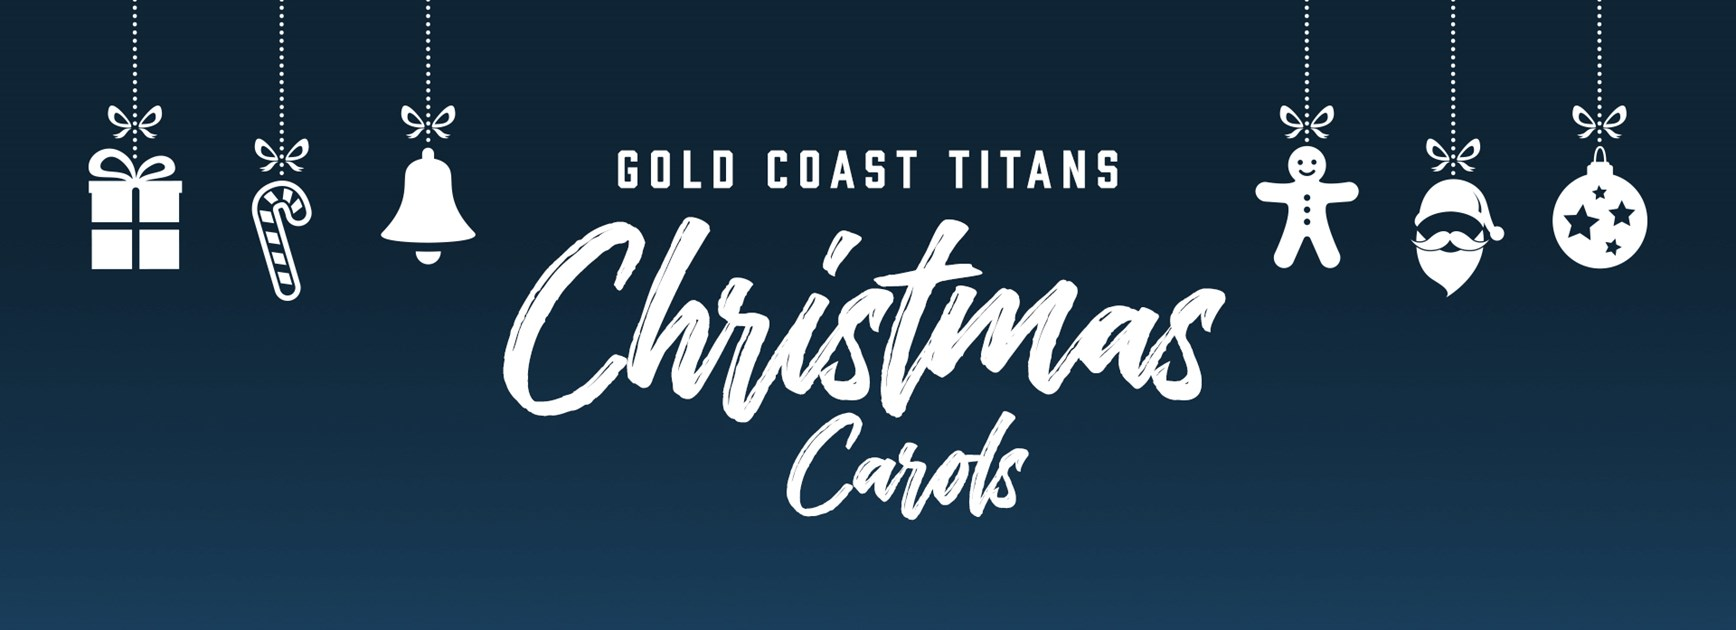 EVENT: GOLD COAST TITANS CHRISTMAS CAROLS